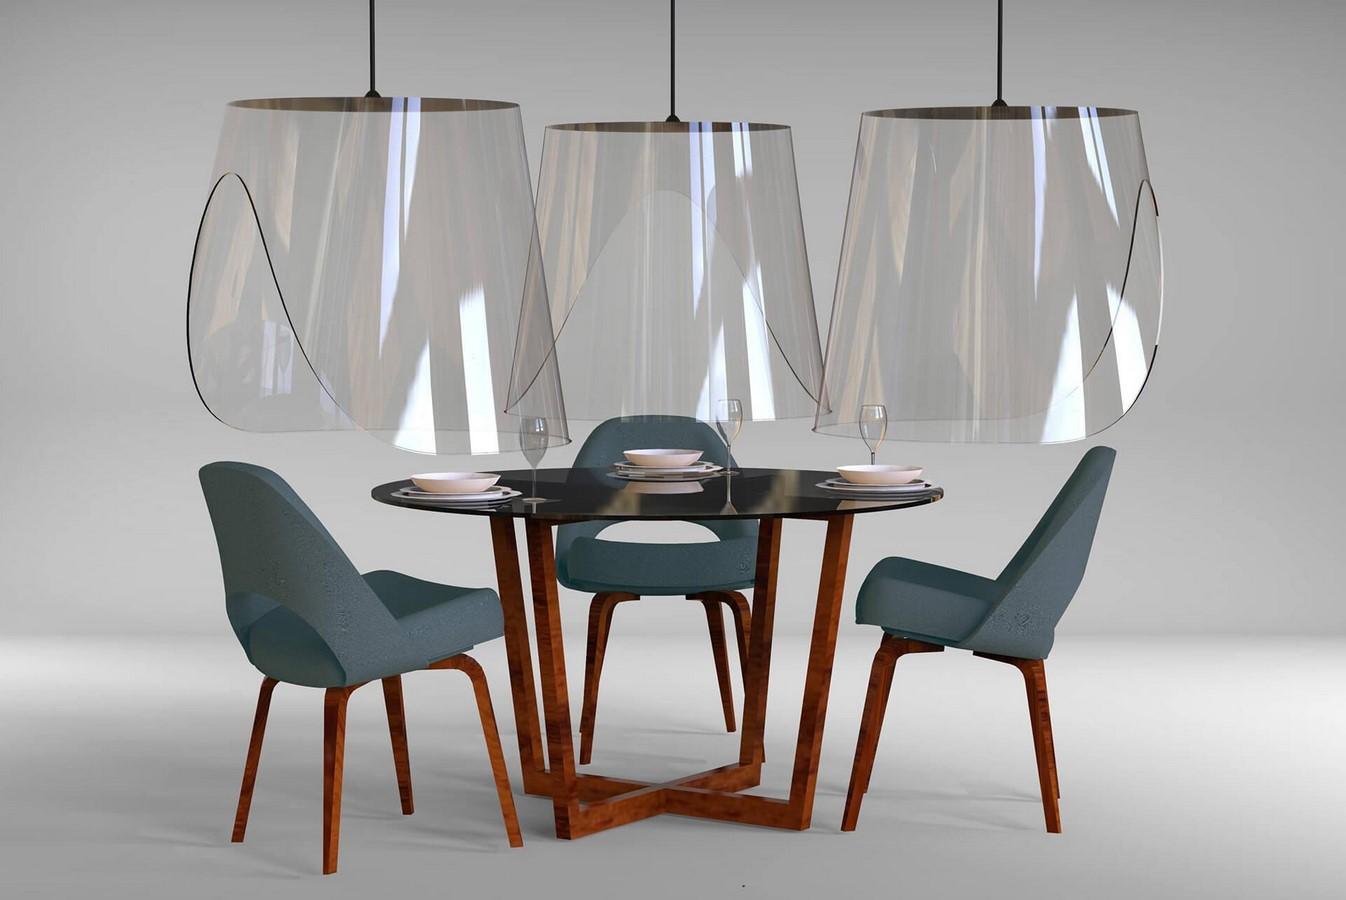 Social distancing furniture: innovative solutions for post pandemic design - Sheet5